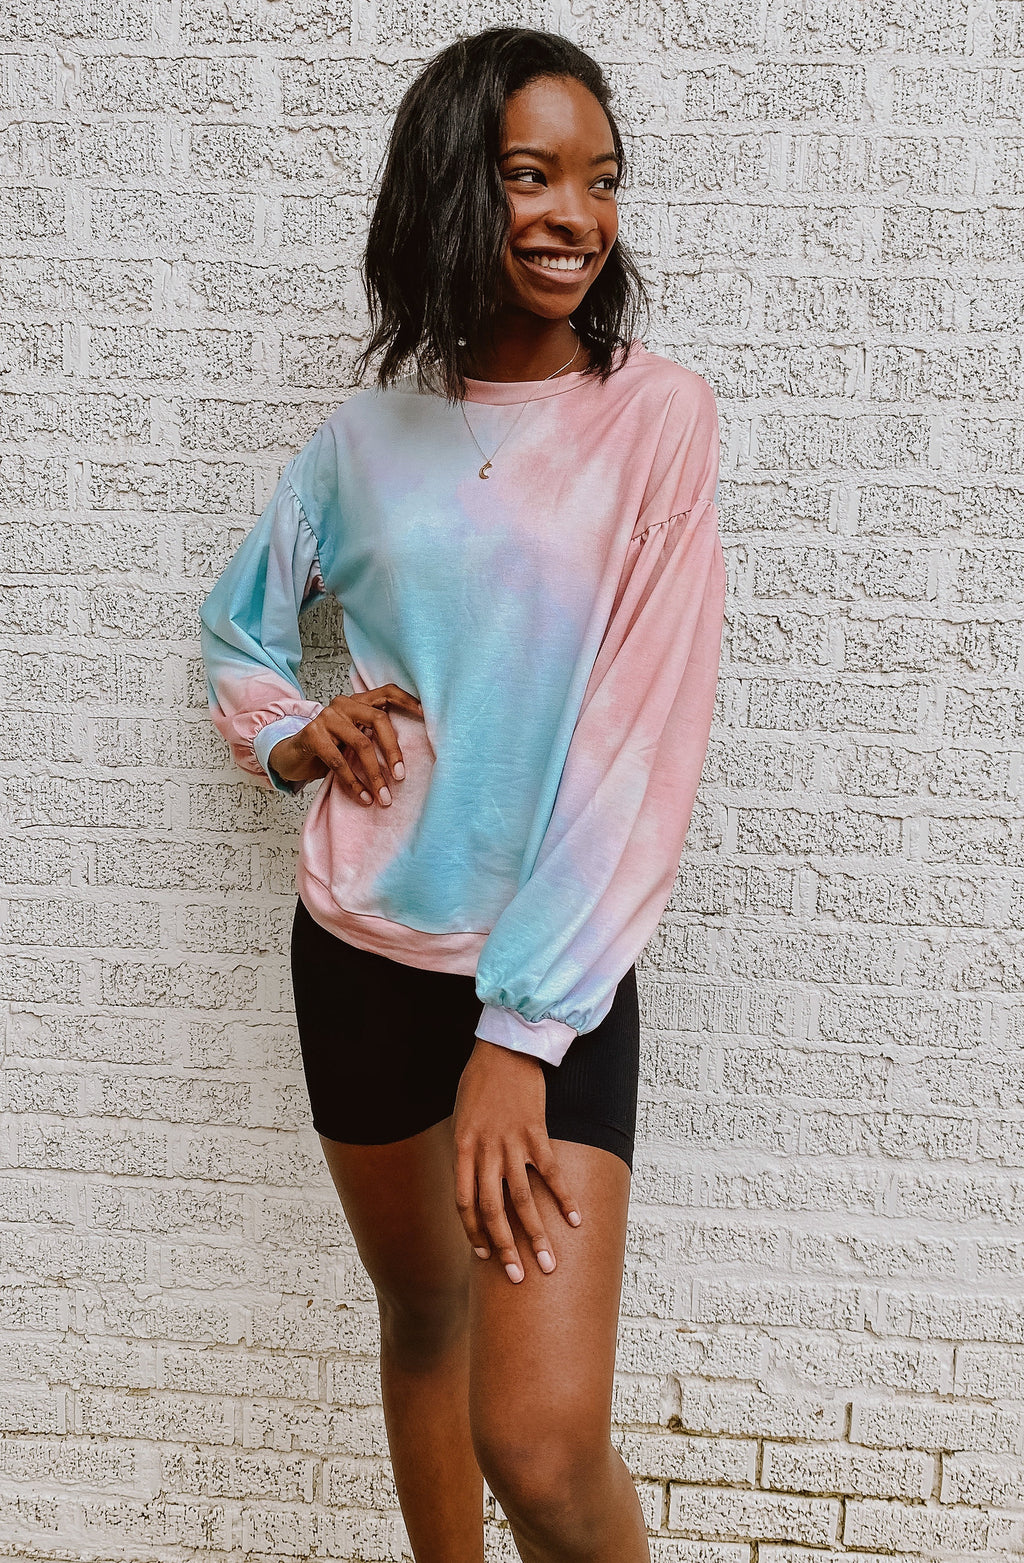 SHY SMILES TIE DYED PULLOVER TOPS